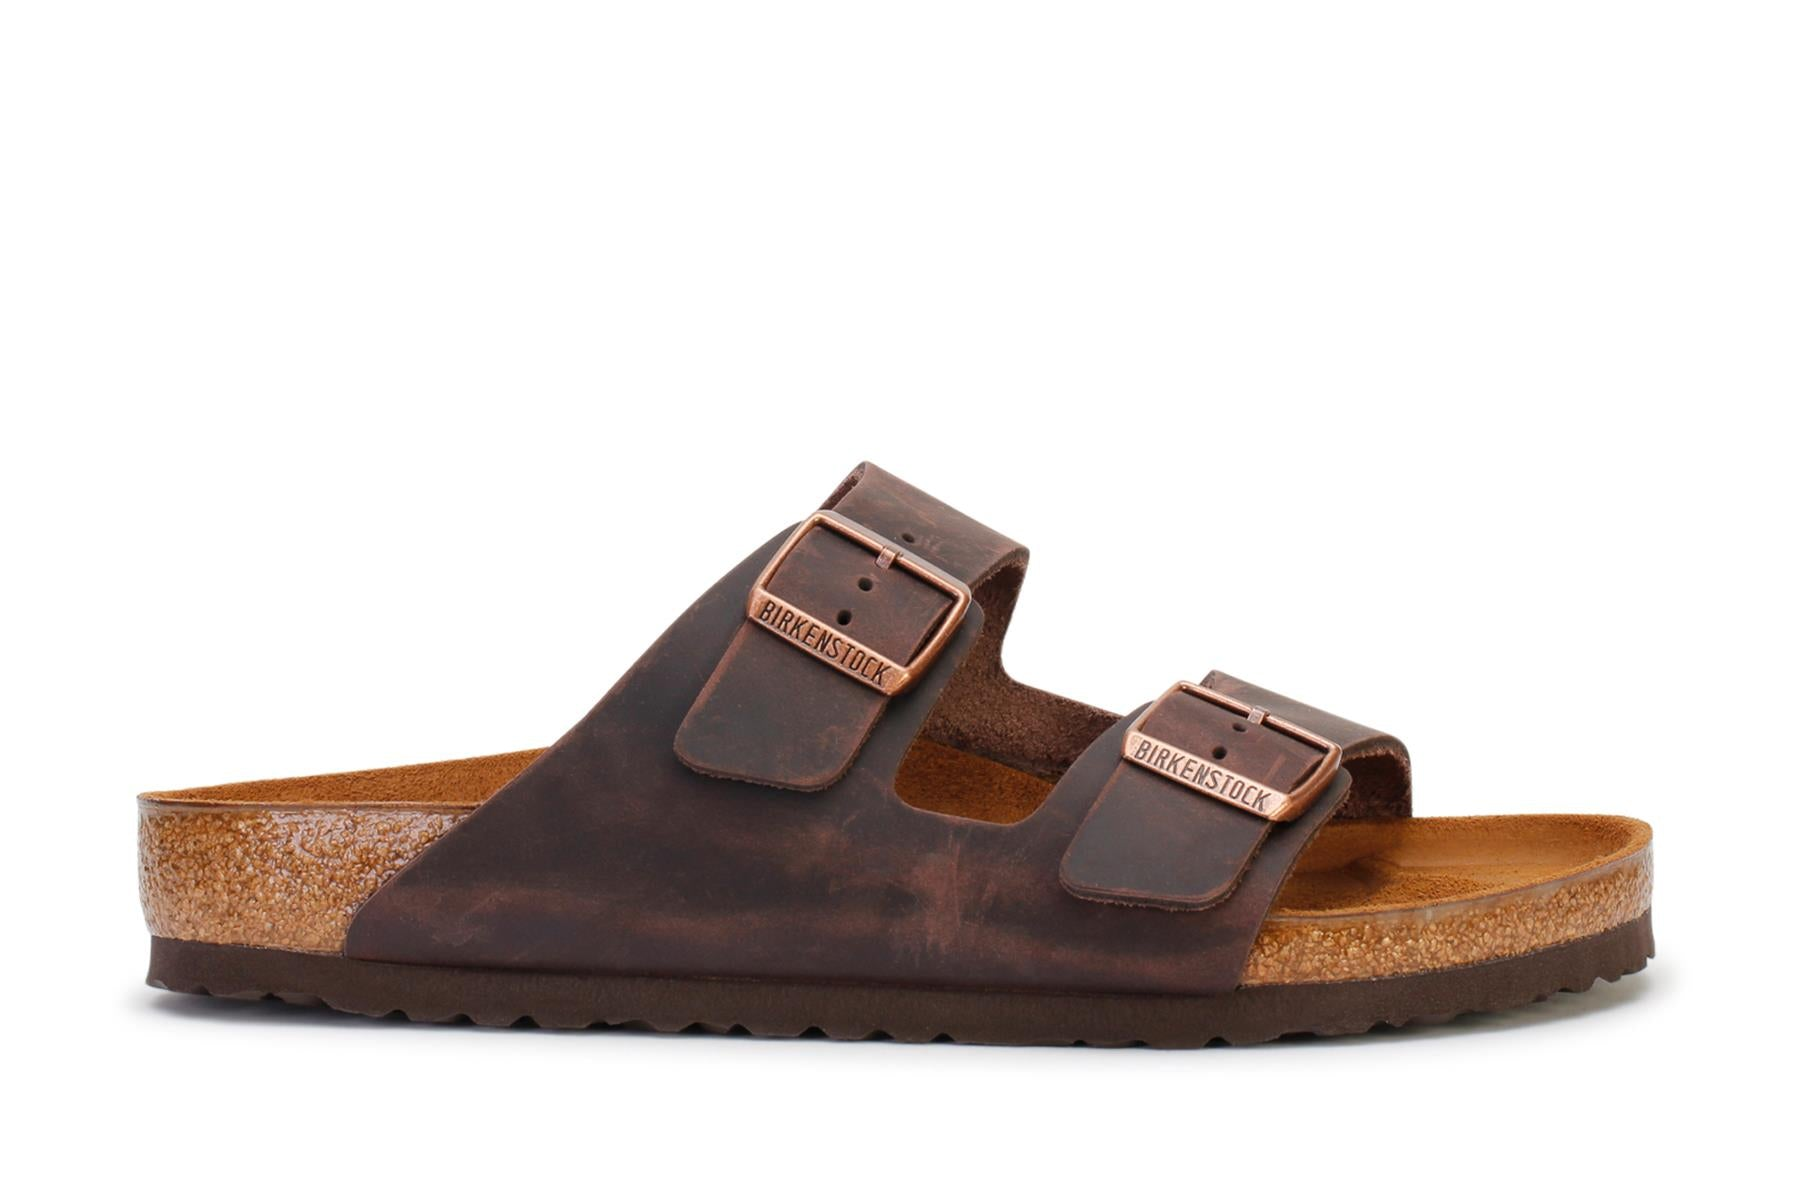 birkenstock-mens-slide-sandals-arizona-oiled-leather-habana-52531-main